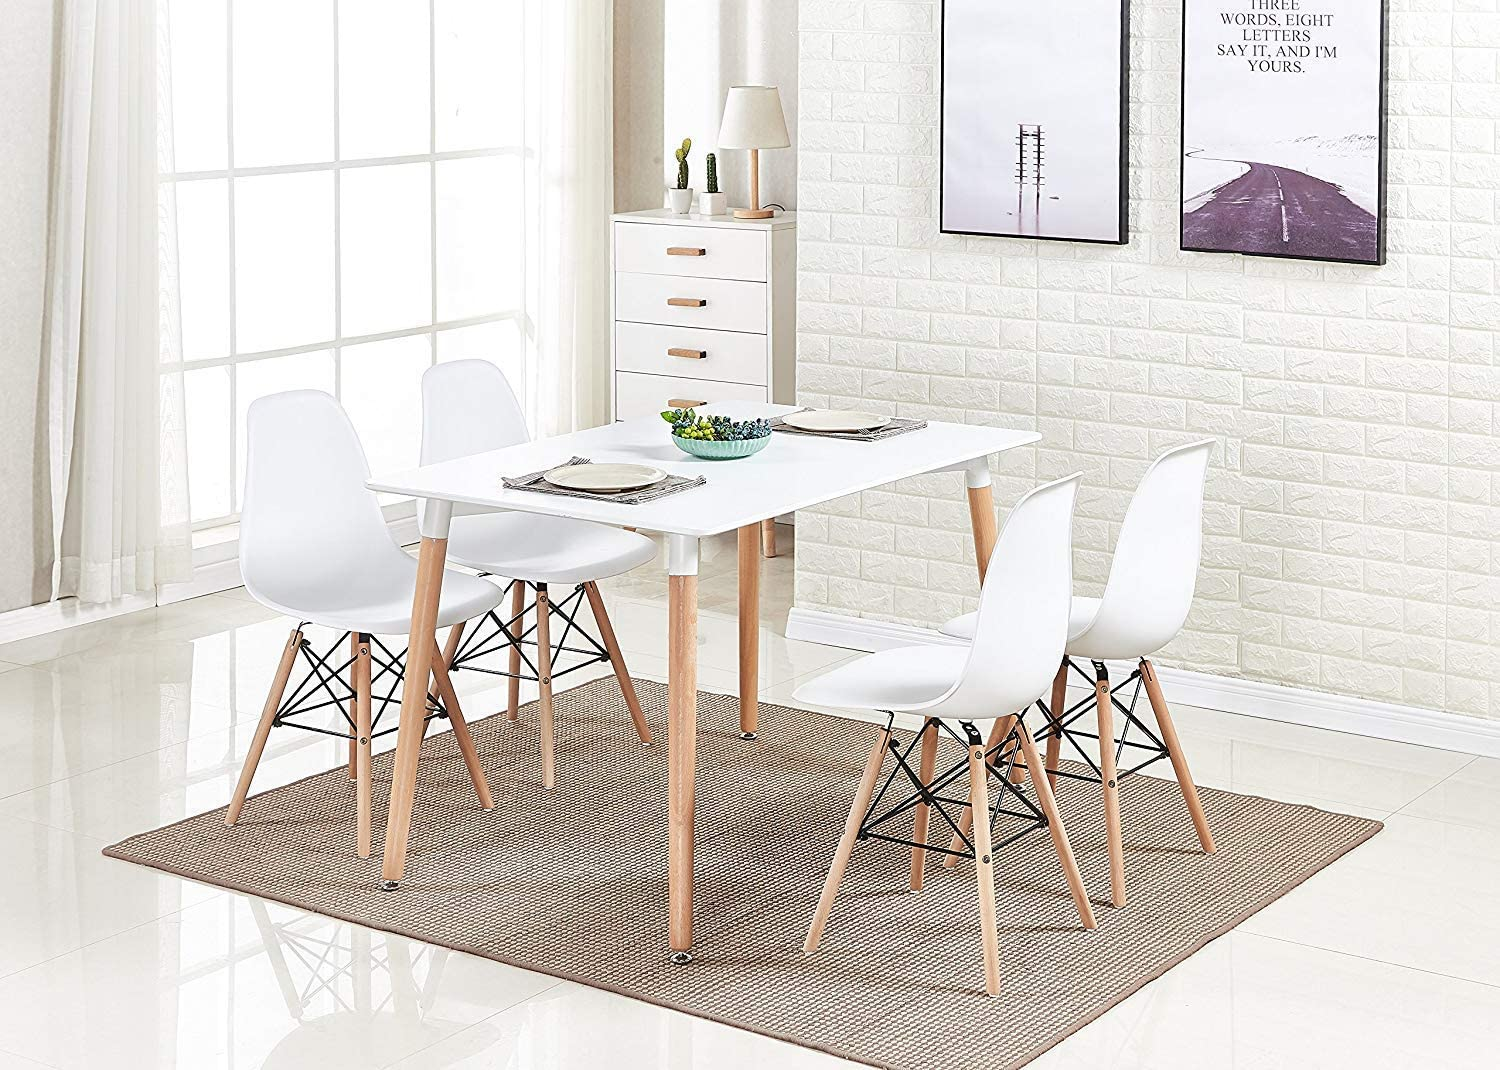 Amazon Com Homesailing White Wood Dining Table And 4 Chairs Set 5 Pieces Kitchen White Wooden Dining Table And 4 Retro Eiffel Plastic Chairs For Dining Room Restaurant Office Tea Room Home